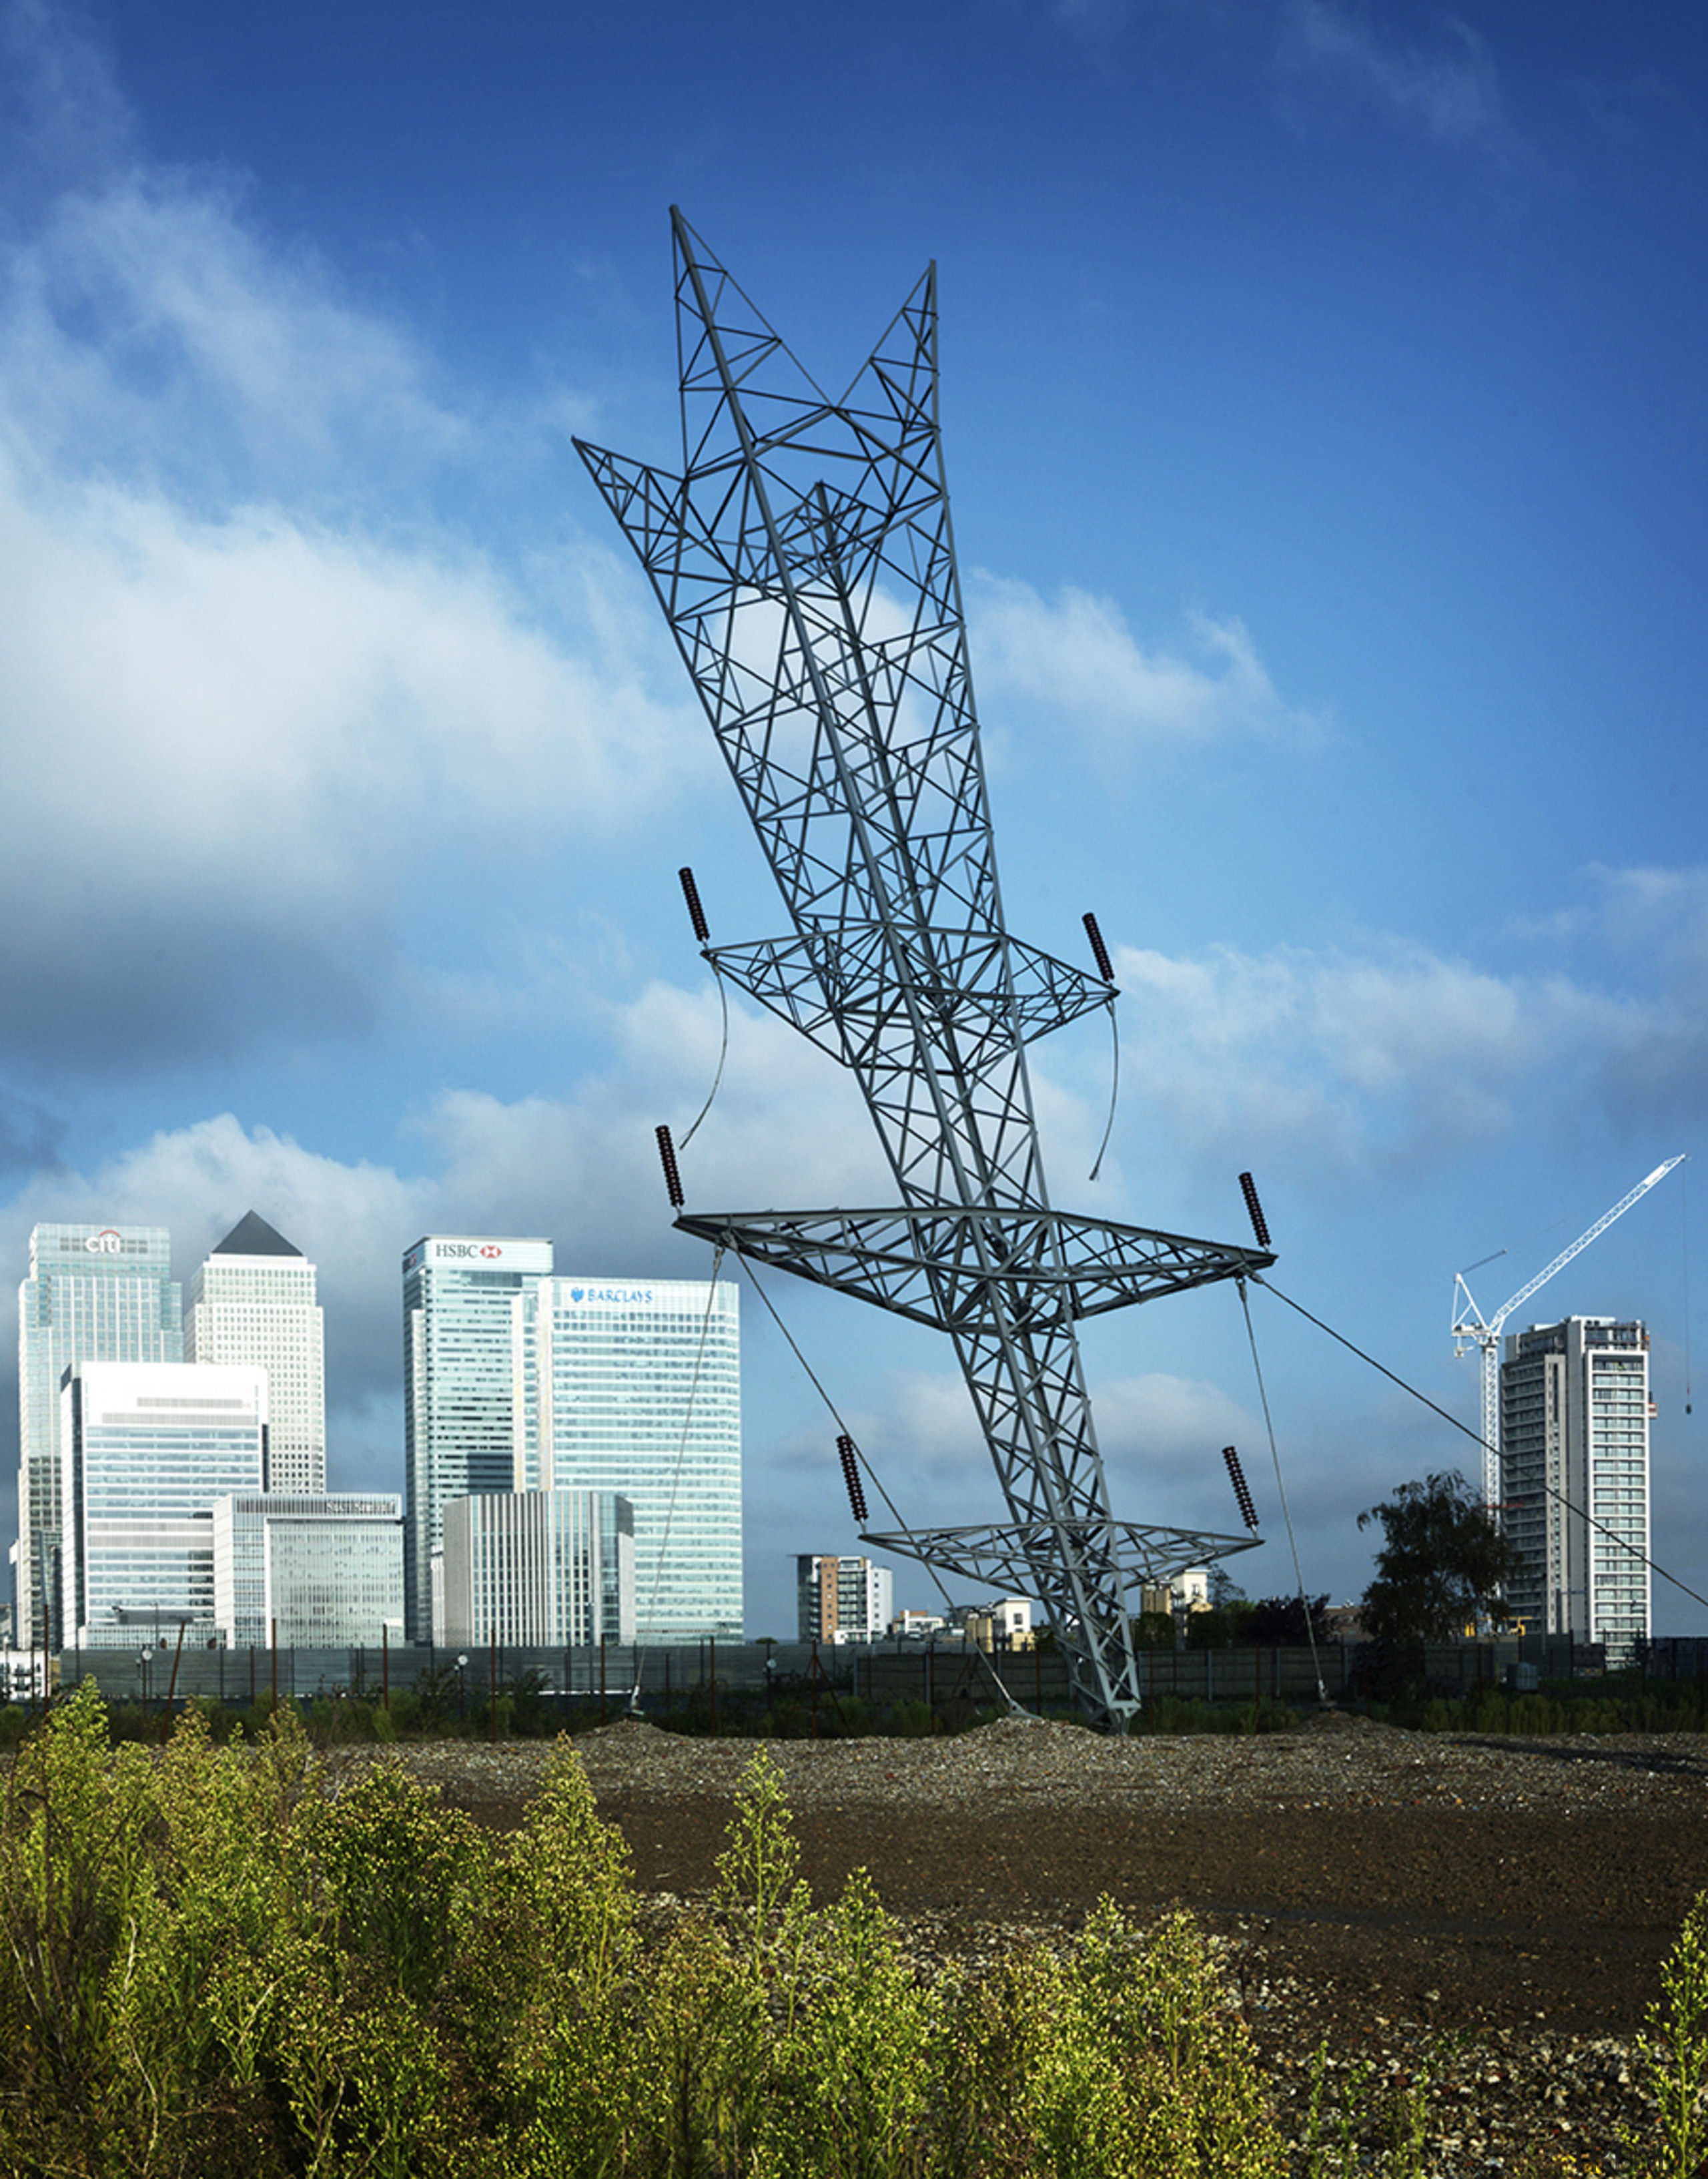 Alex Chinneck – A bullet from a shooting architecture, city, cloud, electrical supply, electricity, infrastructure, line, metropolitan area, overhead power line, public utility, residential area, sky, tower, tower block, transmission tower, tree, urban area, teal, blue